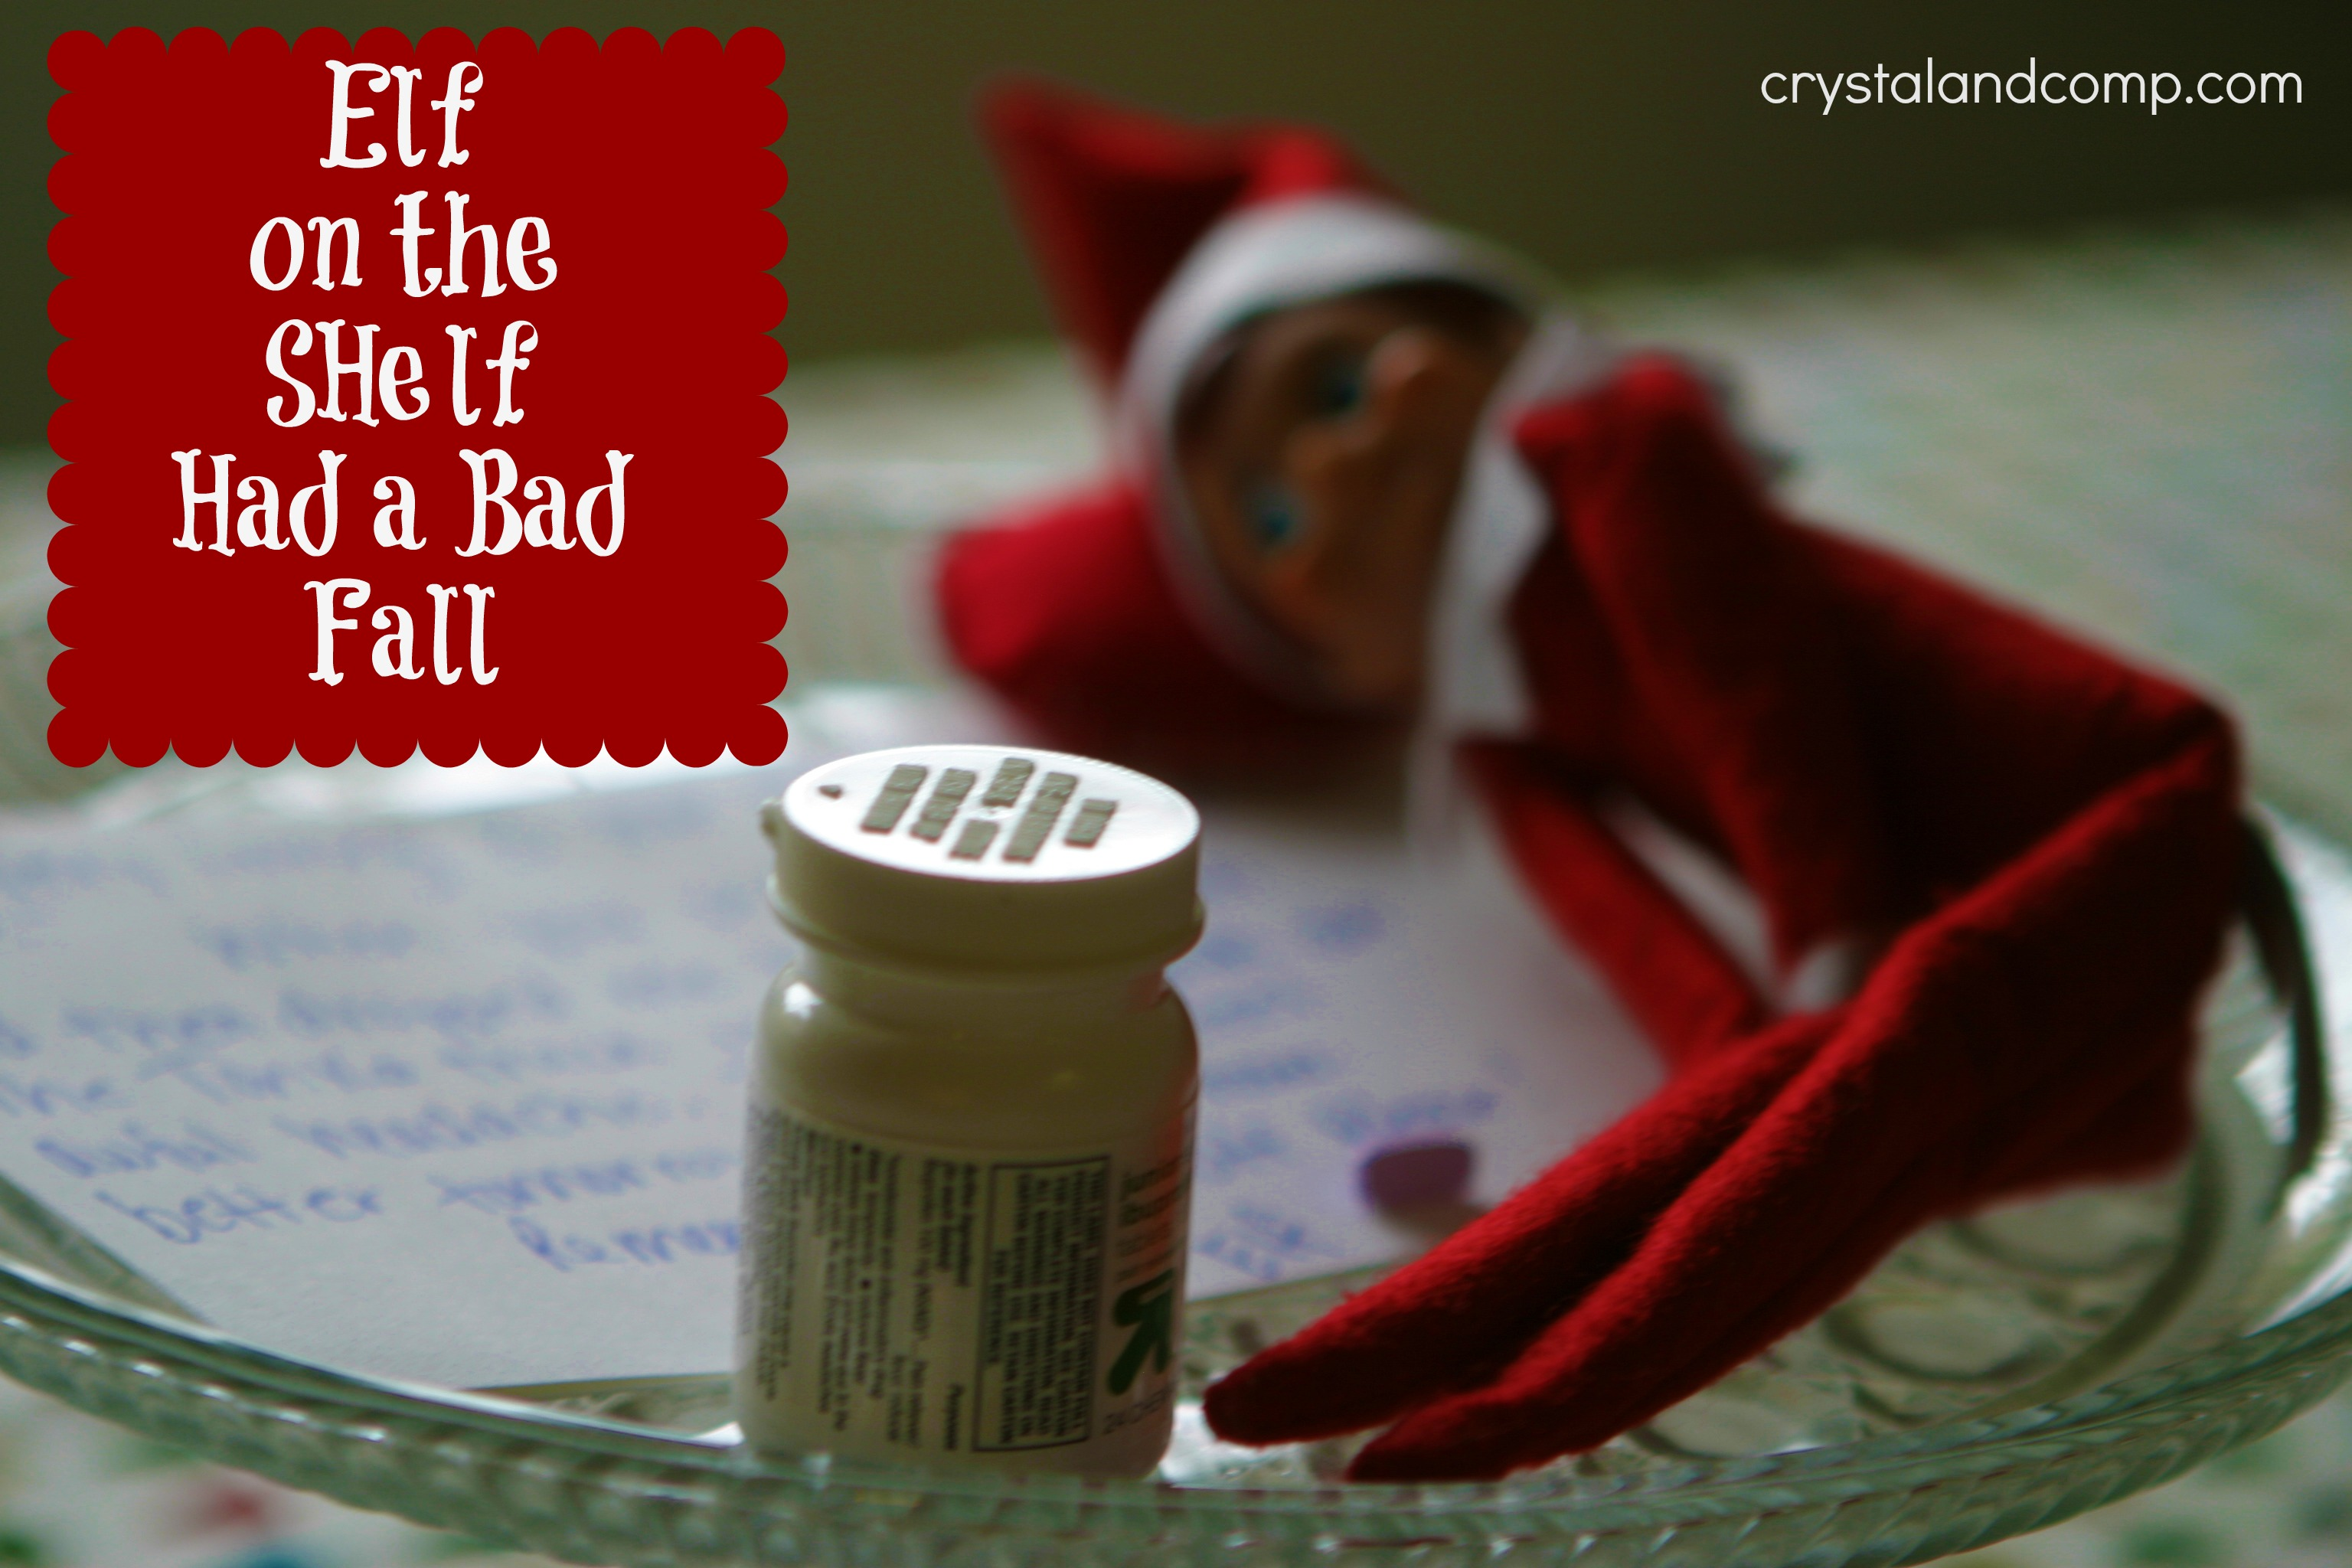 Elf on the Shelf Had a Bad Fall #elfontheshelf | CrystalandComp.com